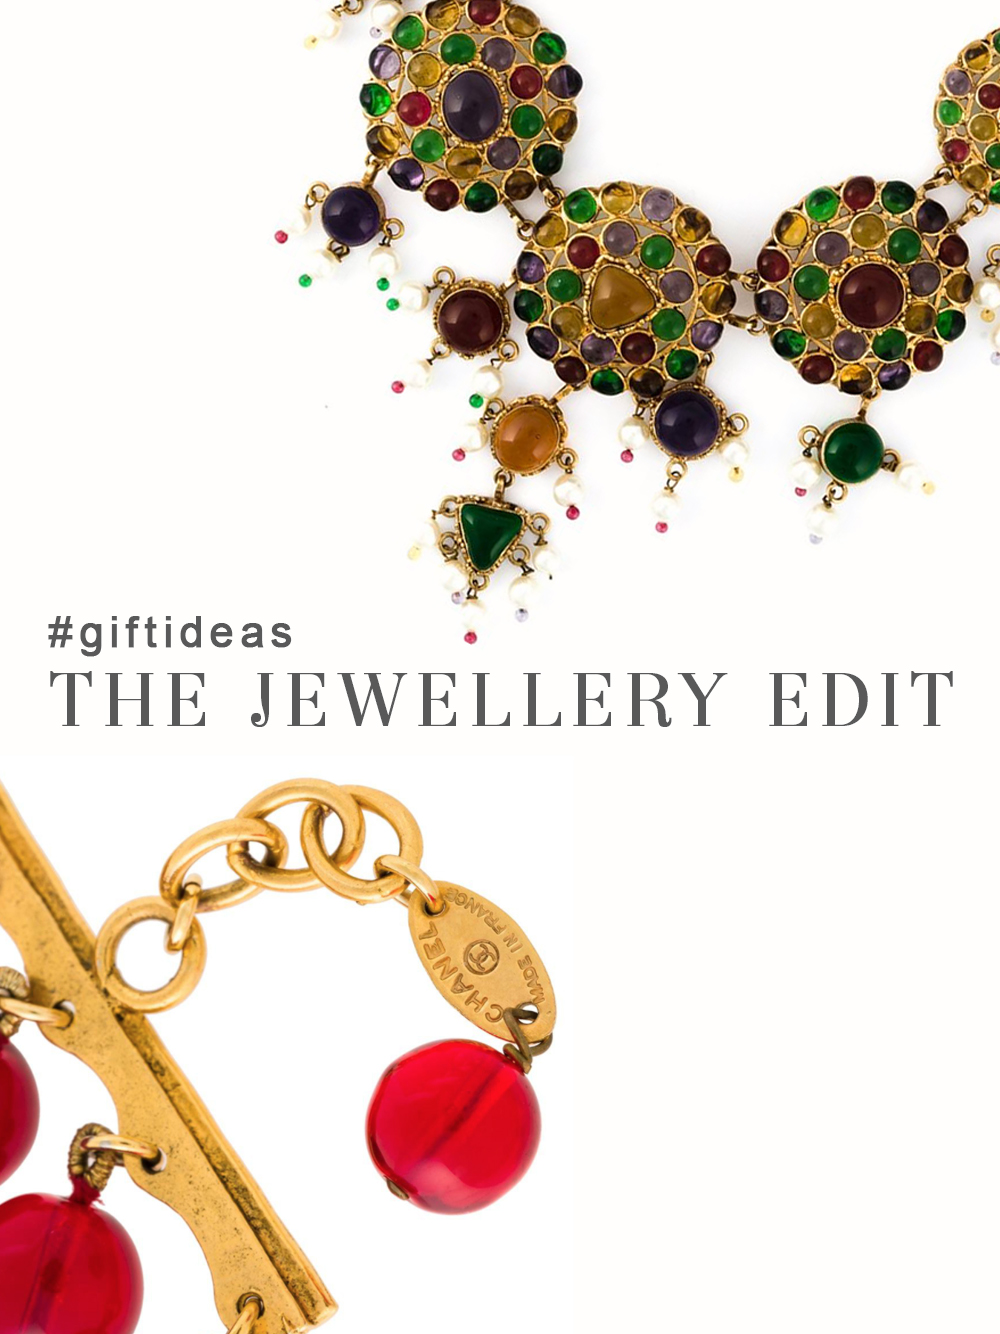 The Jewellery Edit